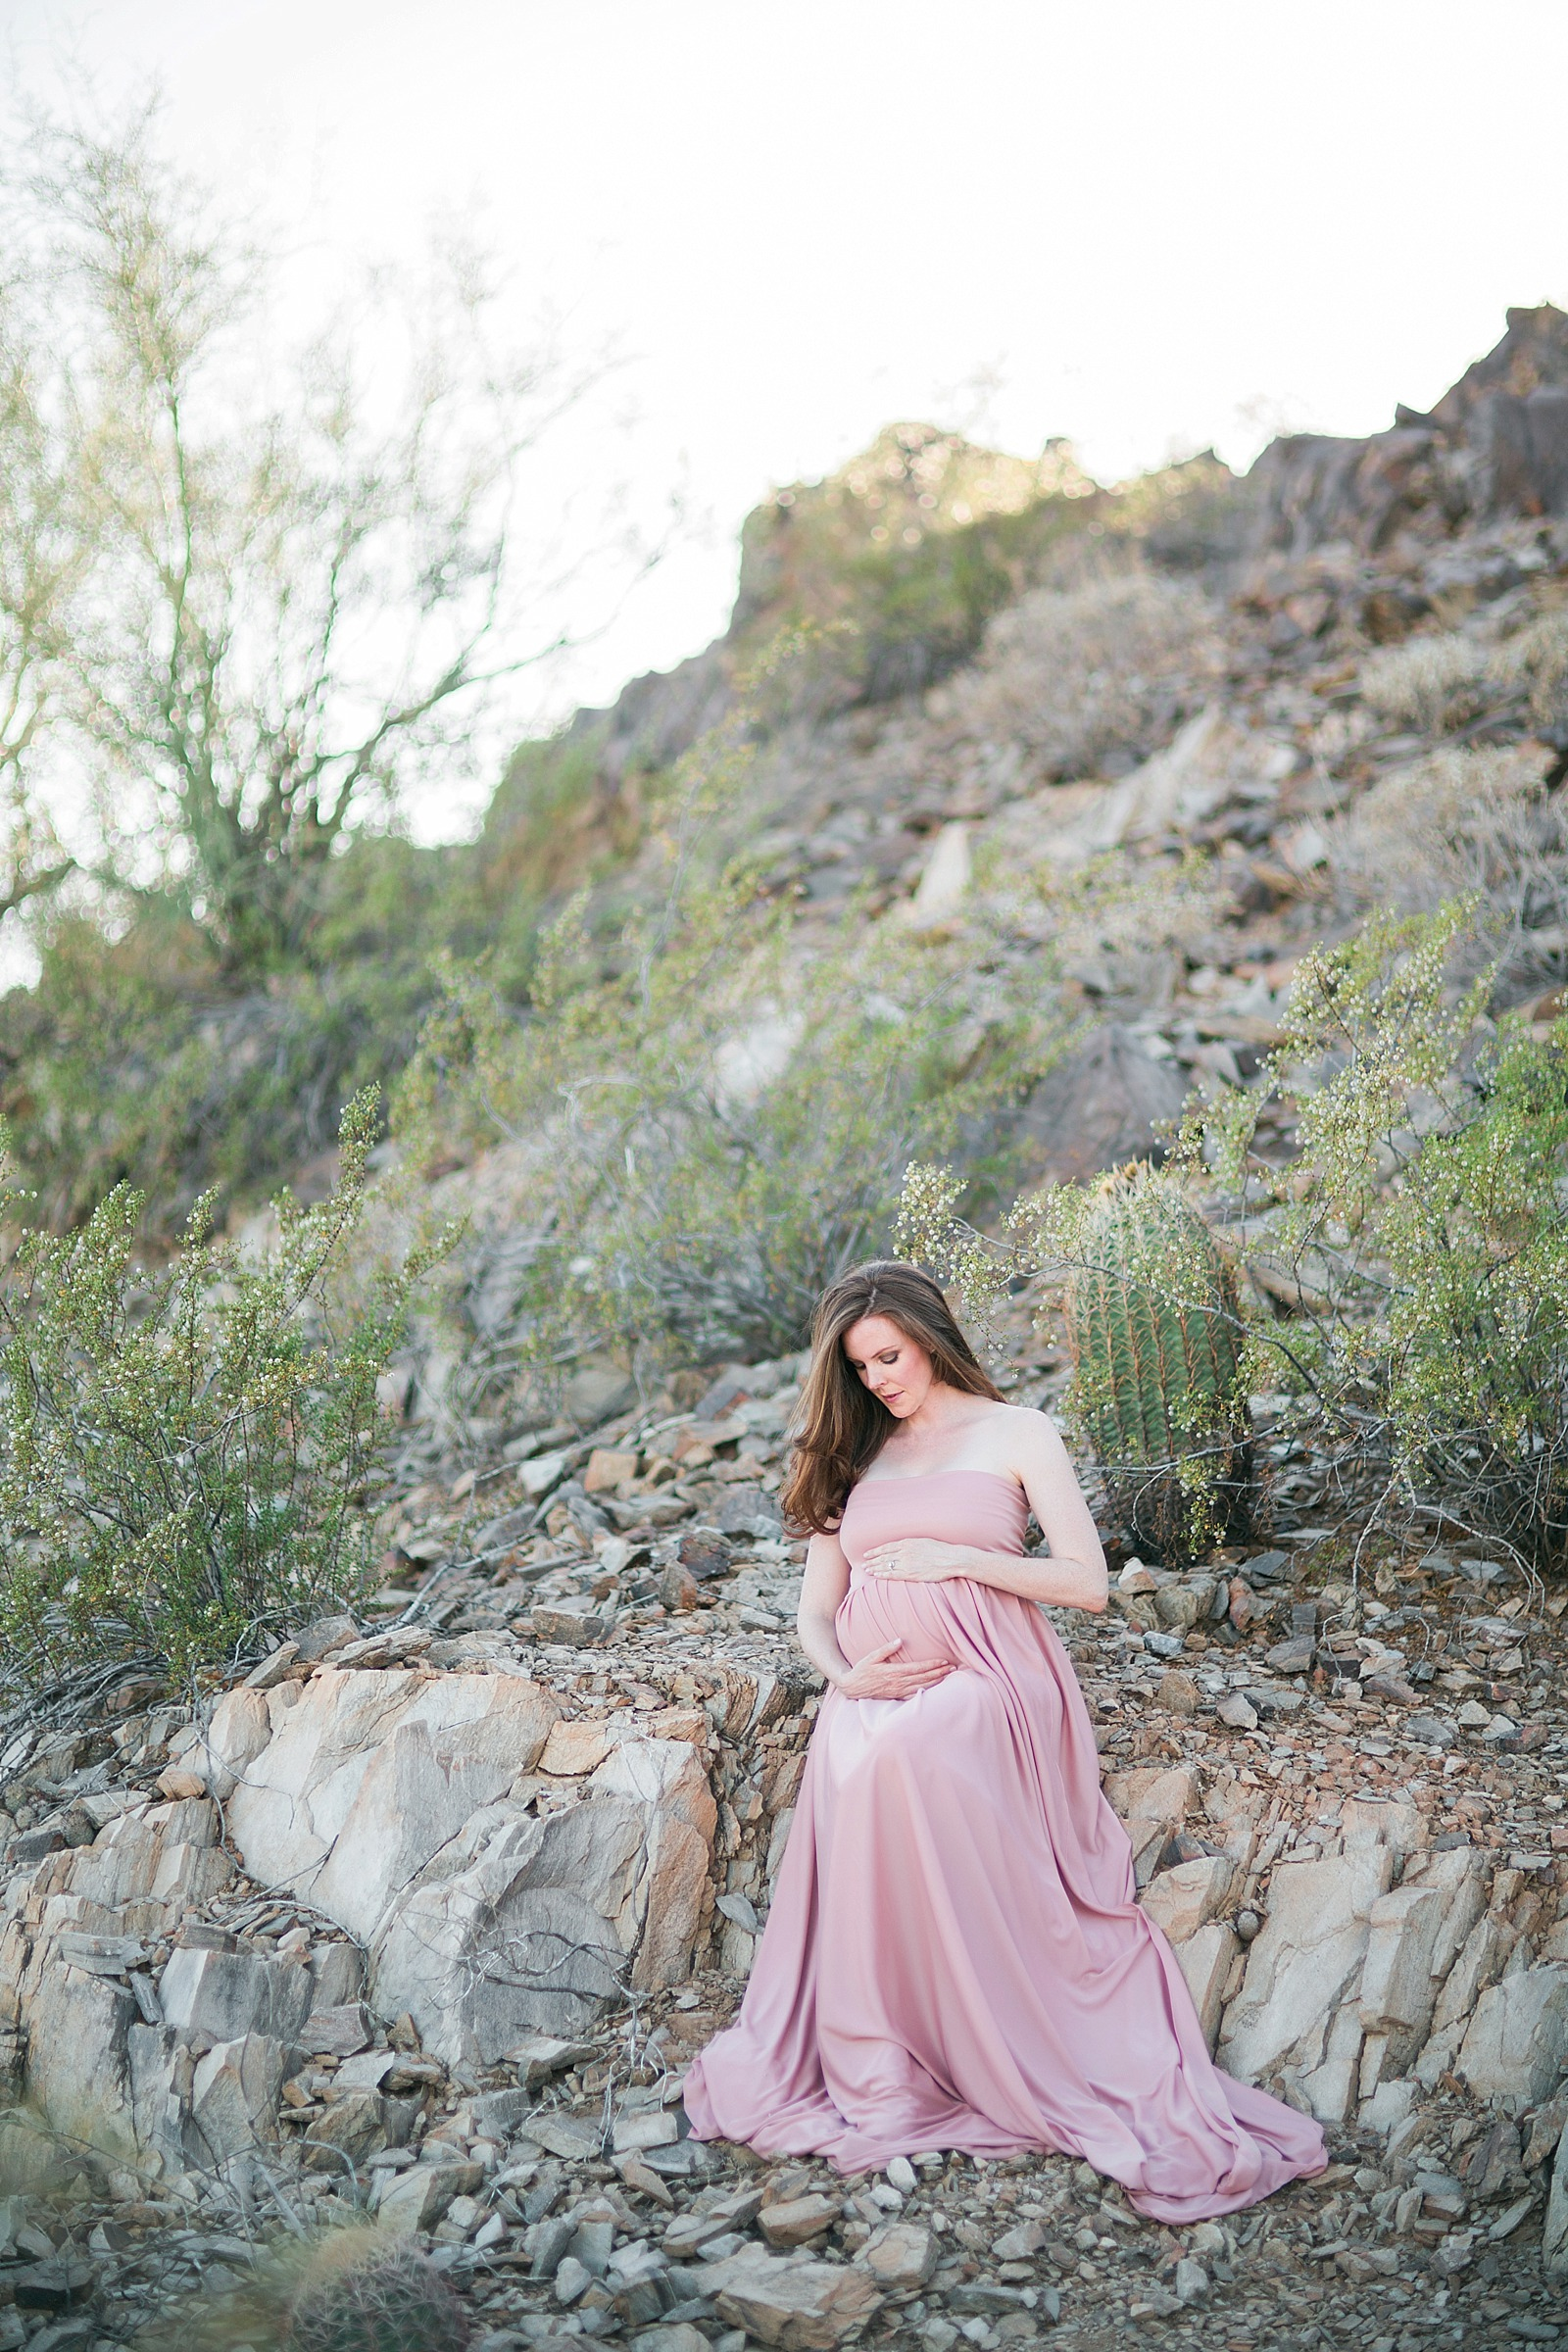 pink dusty rose dress maternity in desert idea baby girl (c) diana elizabeth photography, llc www.dianaelizabeth.com